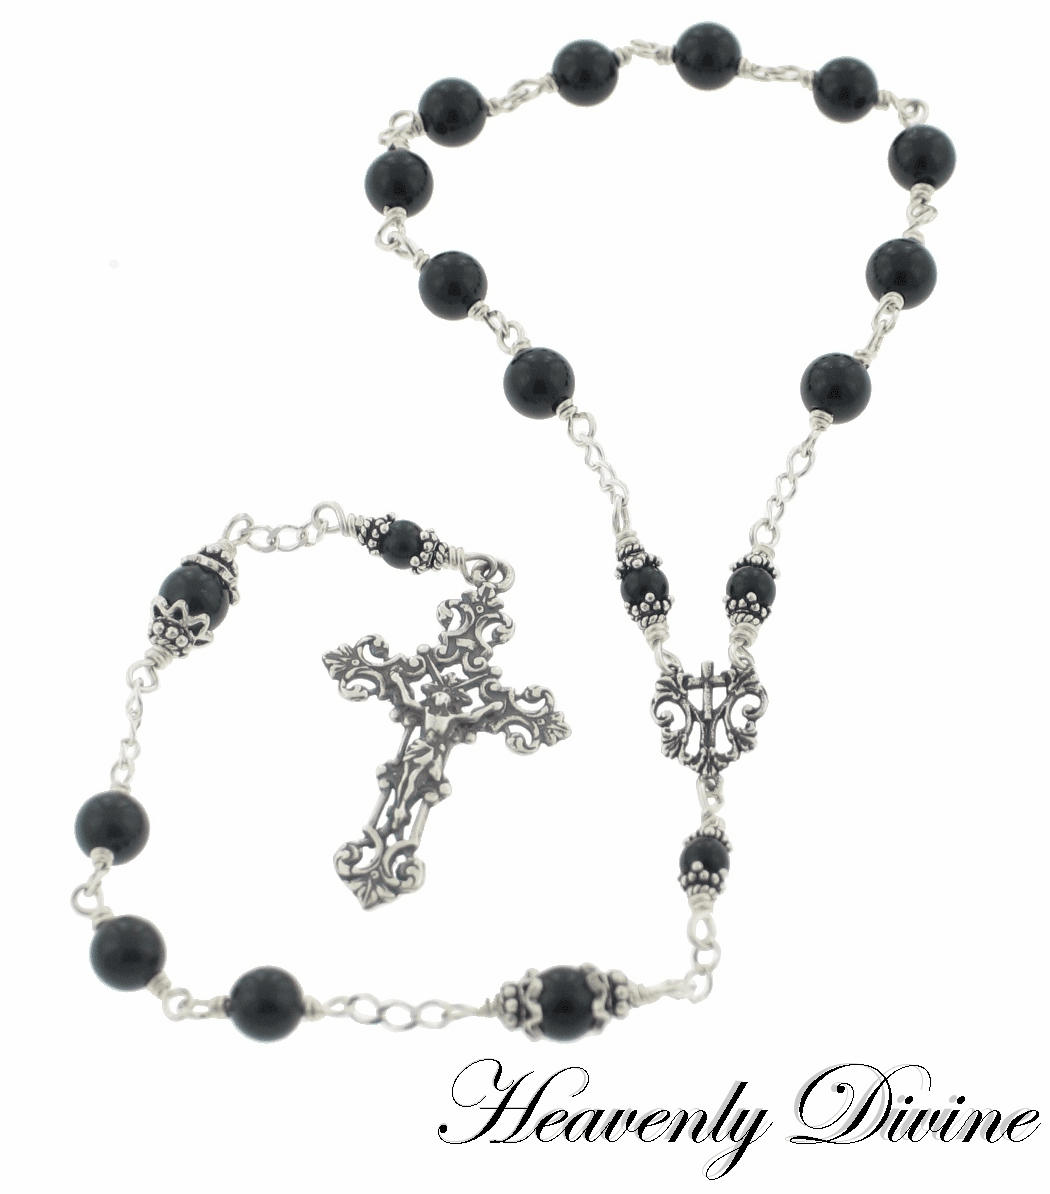 Small Black Onyx Sterling Silver One-Decade Rosary by Heavenly Divine